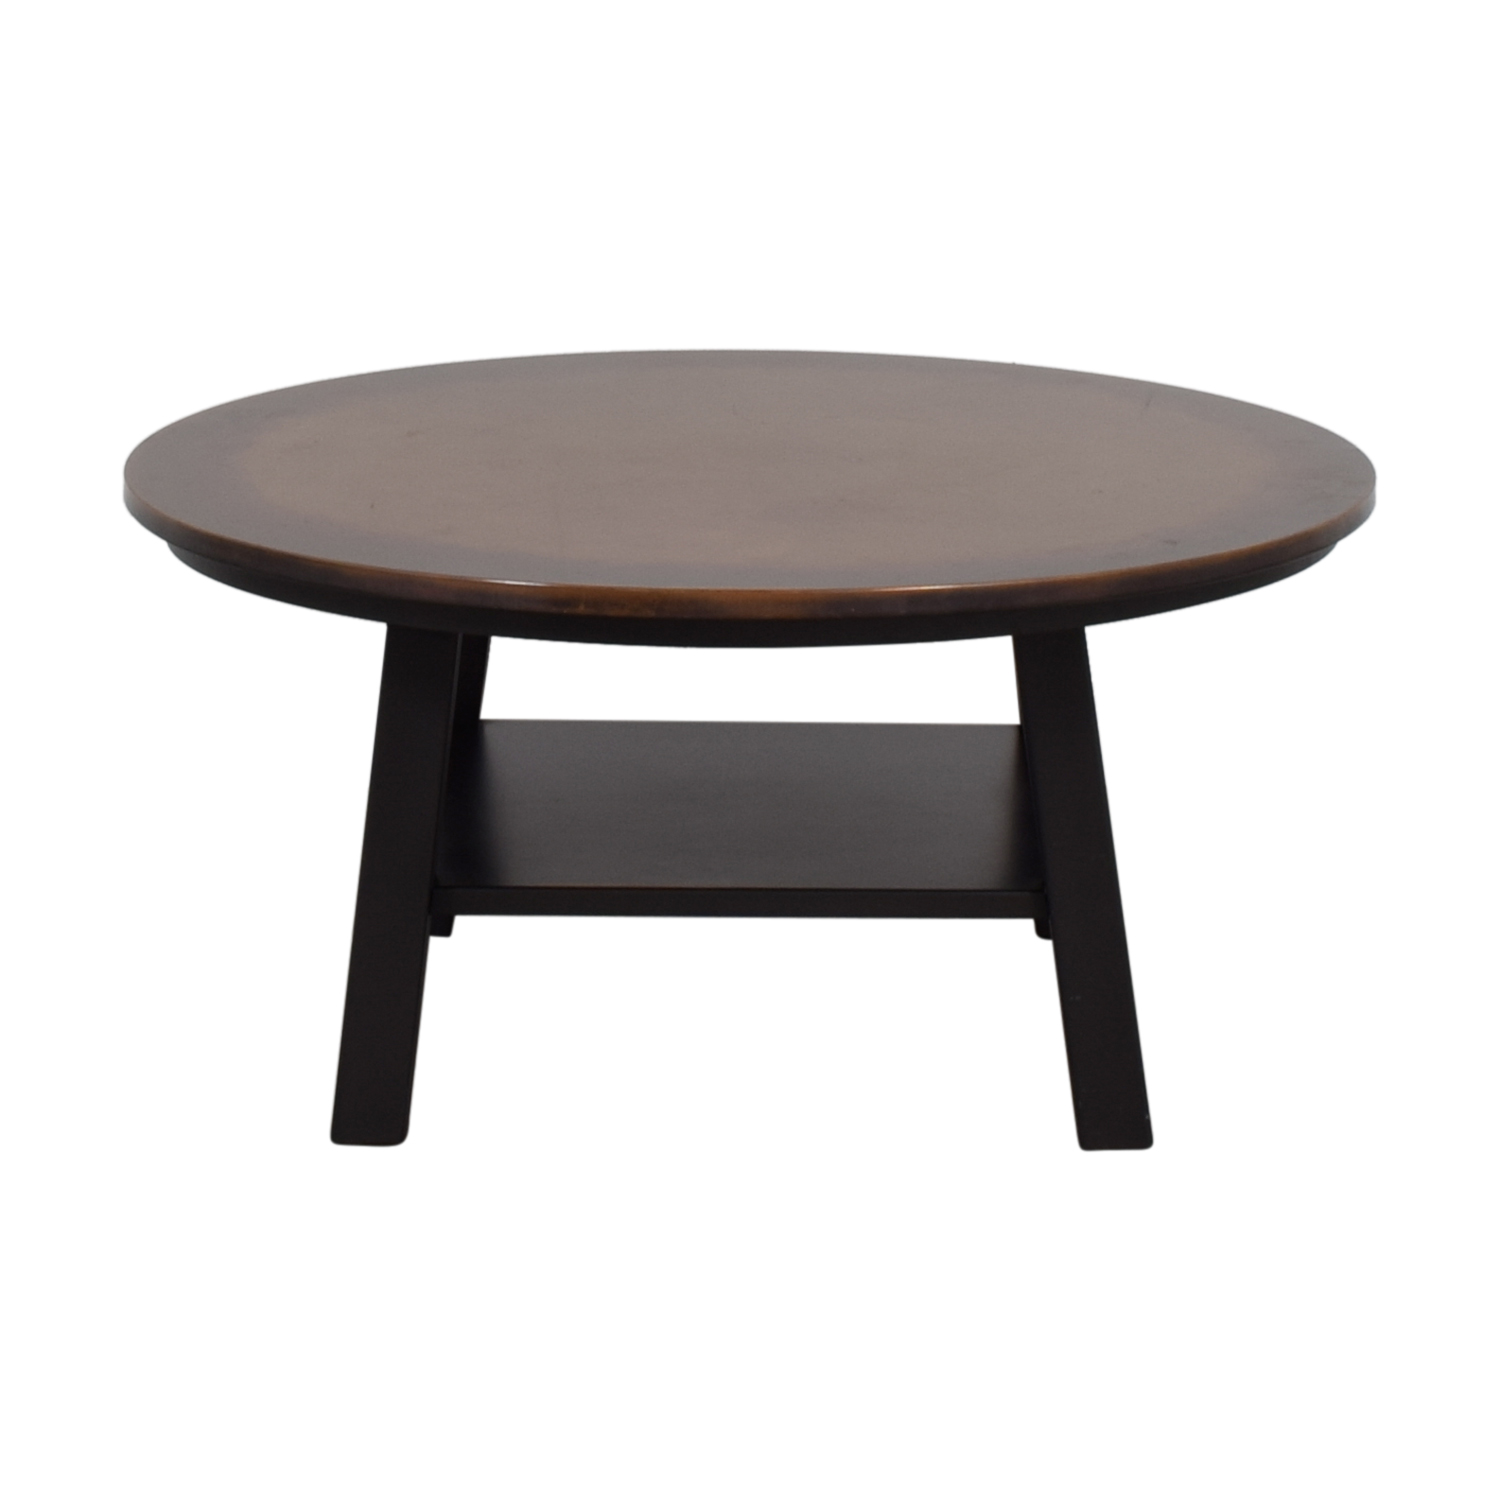 90 Off Round Copper Top Coffee Table